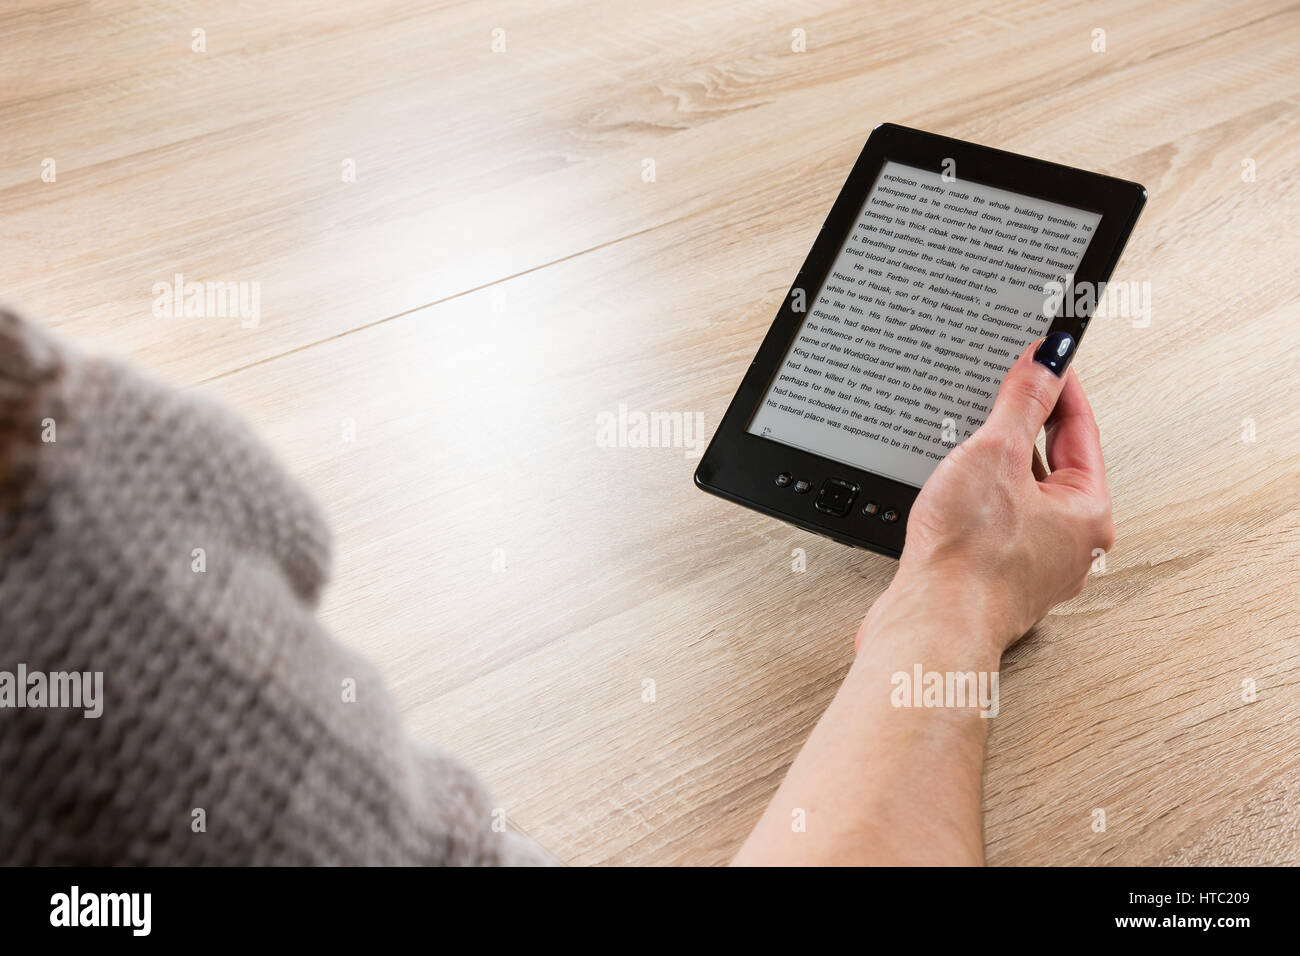 Woman holding ebook reader in front of the table - Stock Image